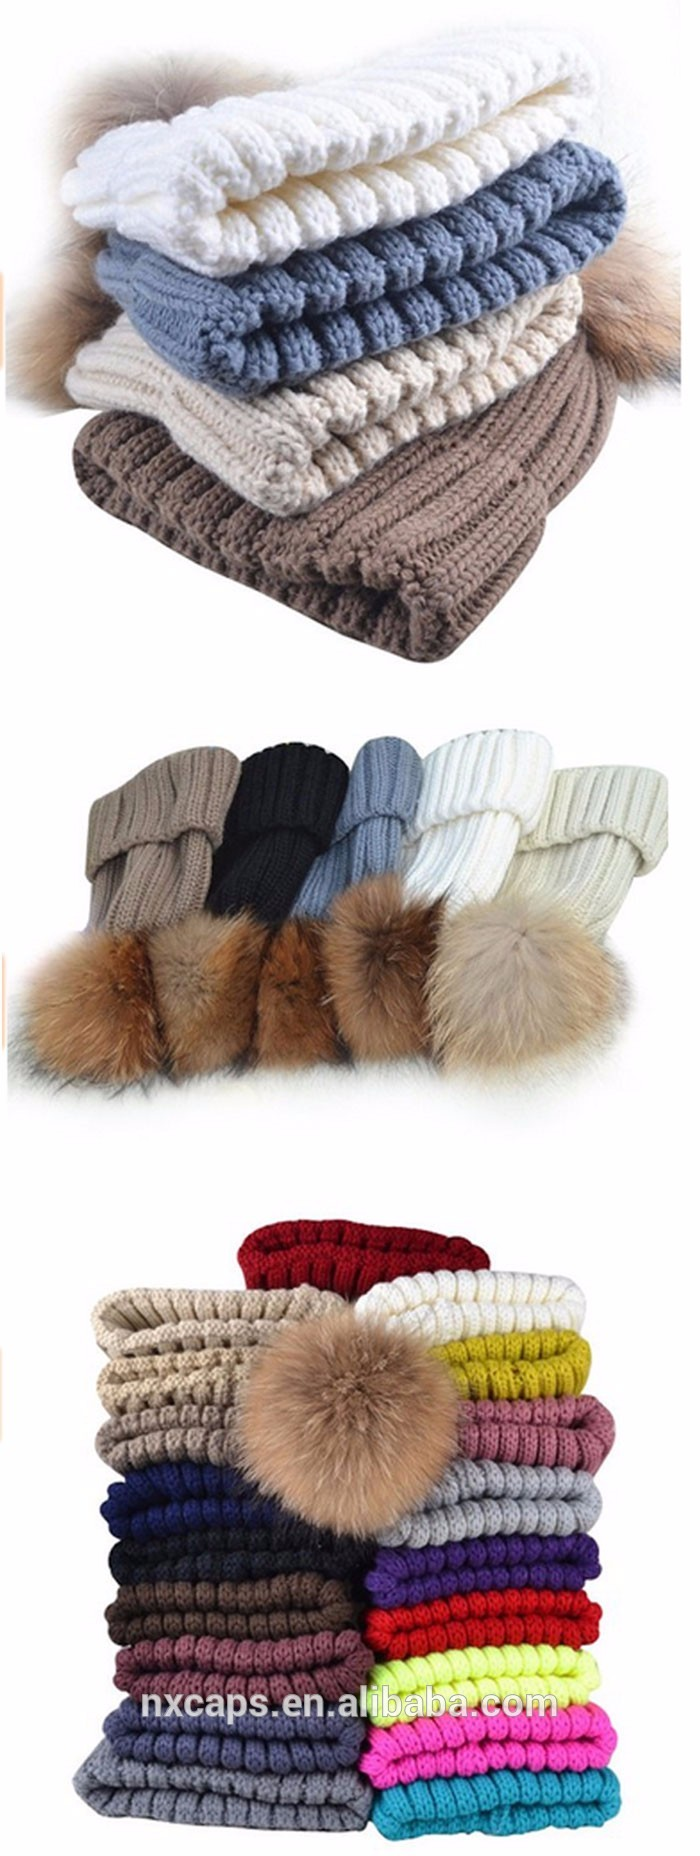 Genuine Fox Fur Pom Pom Cashmere Mix Knit Winter Wool Hat Beanies for Women with top ball.jpg